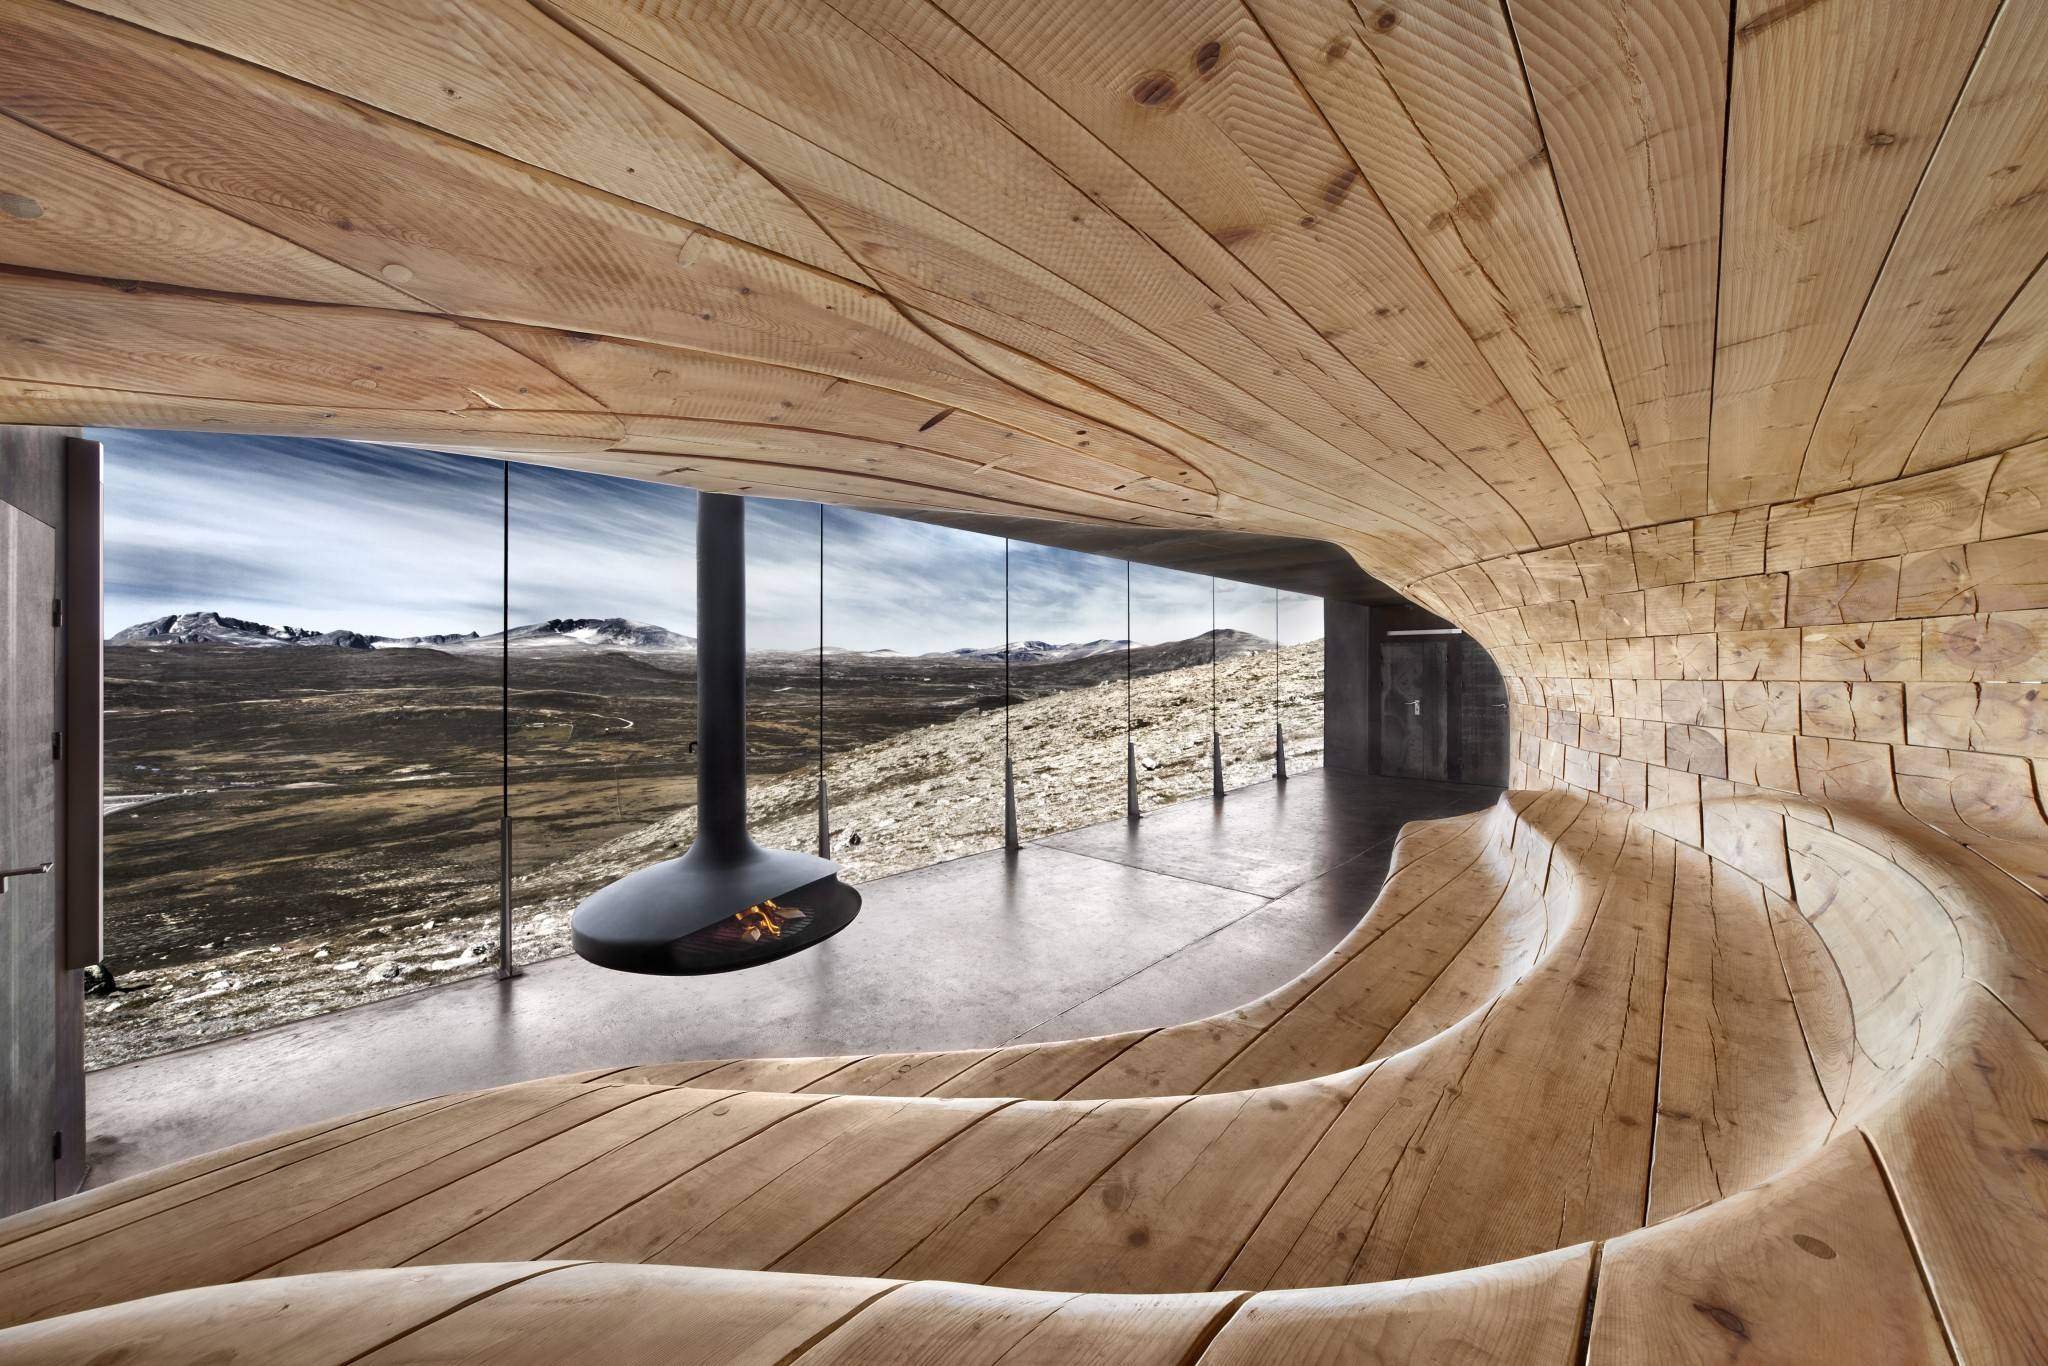 Snoehetta Architects, Oslo - reindeer Observation - nordic pine wood - waxed concrete floor with extension joints, Free hanging steel fireplace and tripled security glass windows